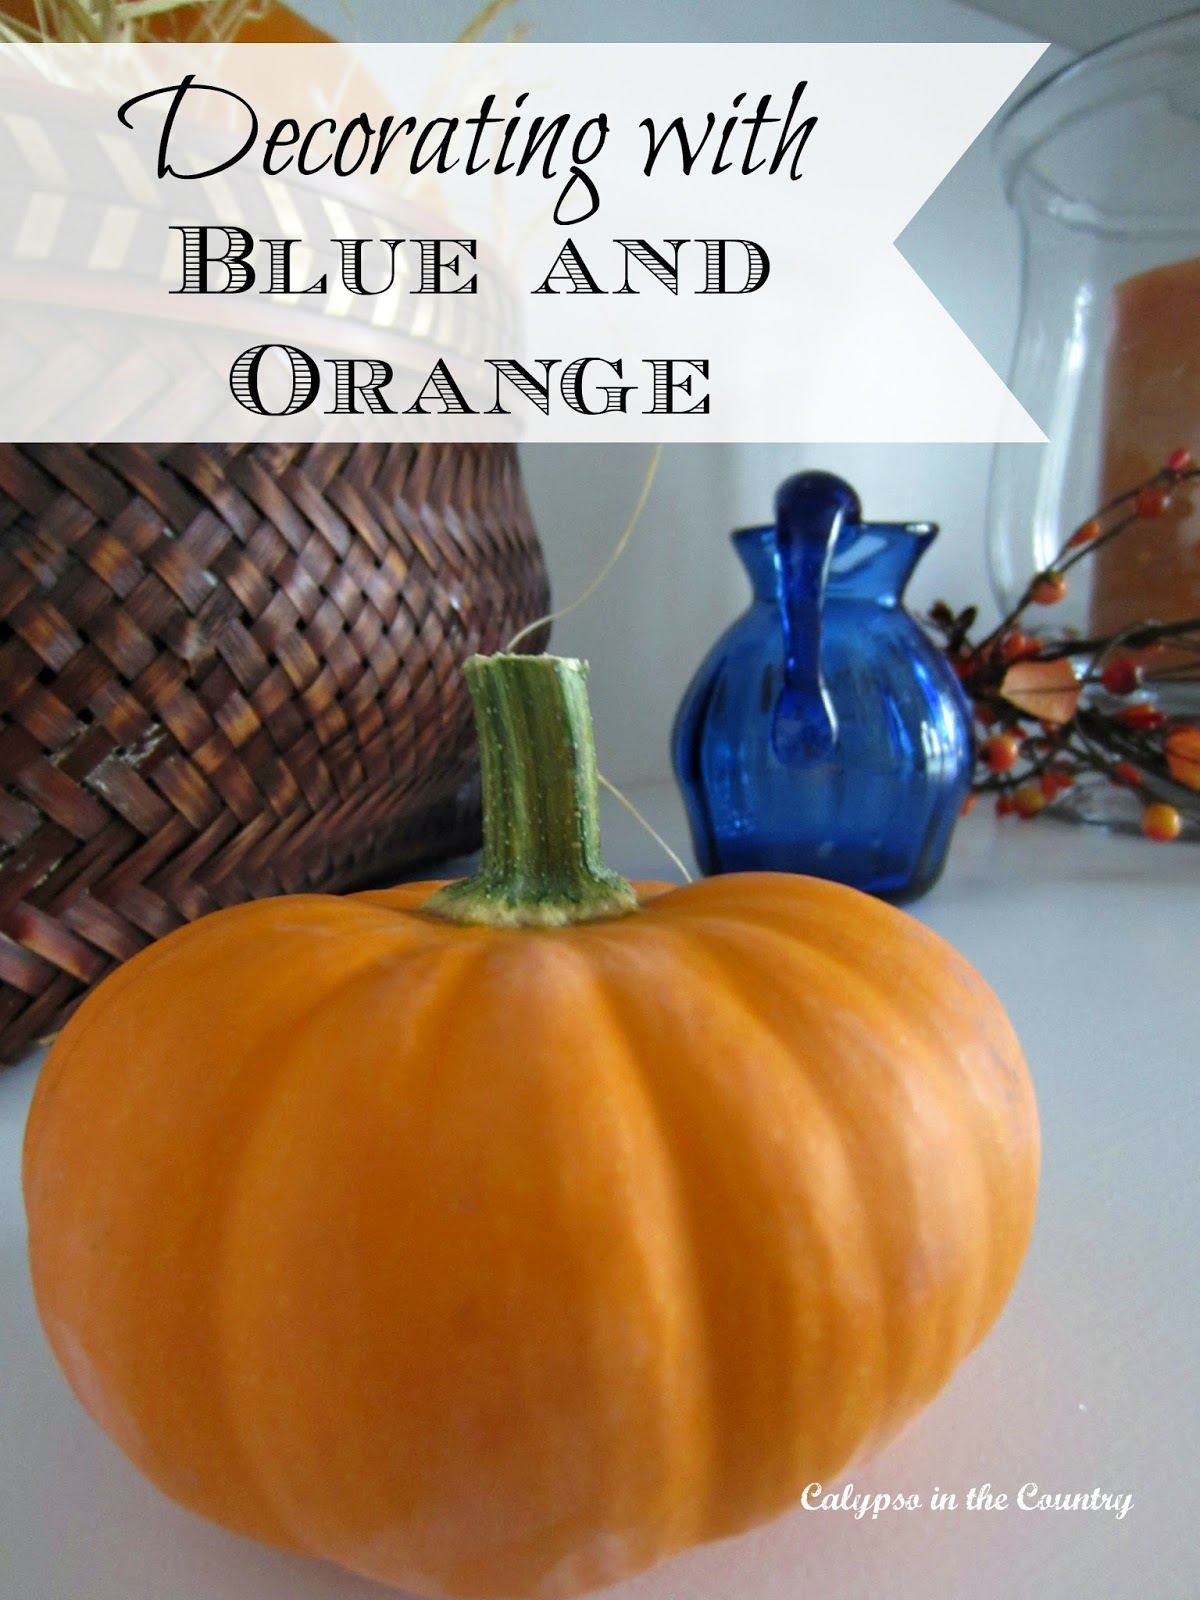 Decorating with Blue and Orange